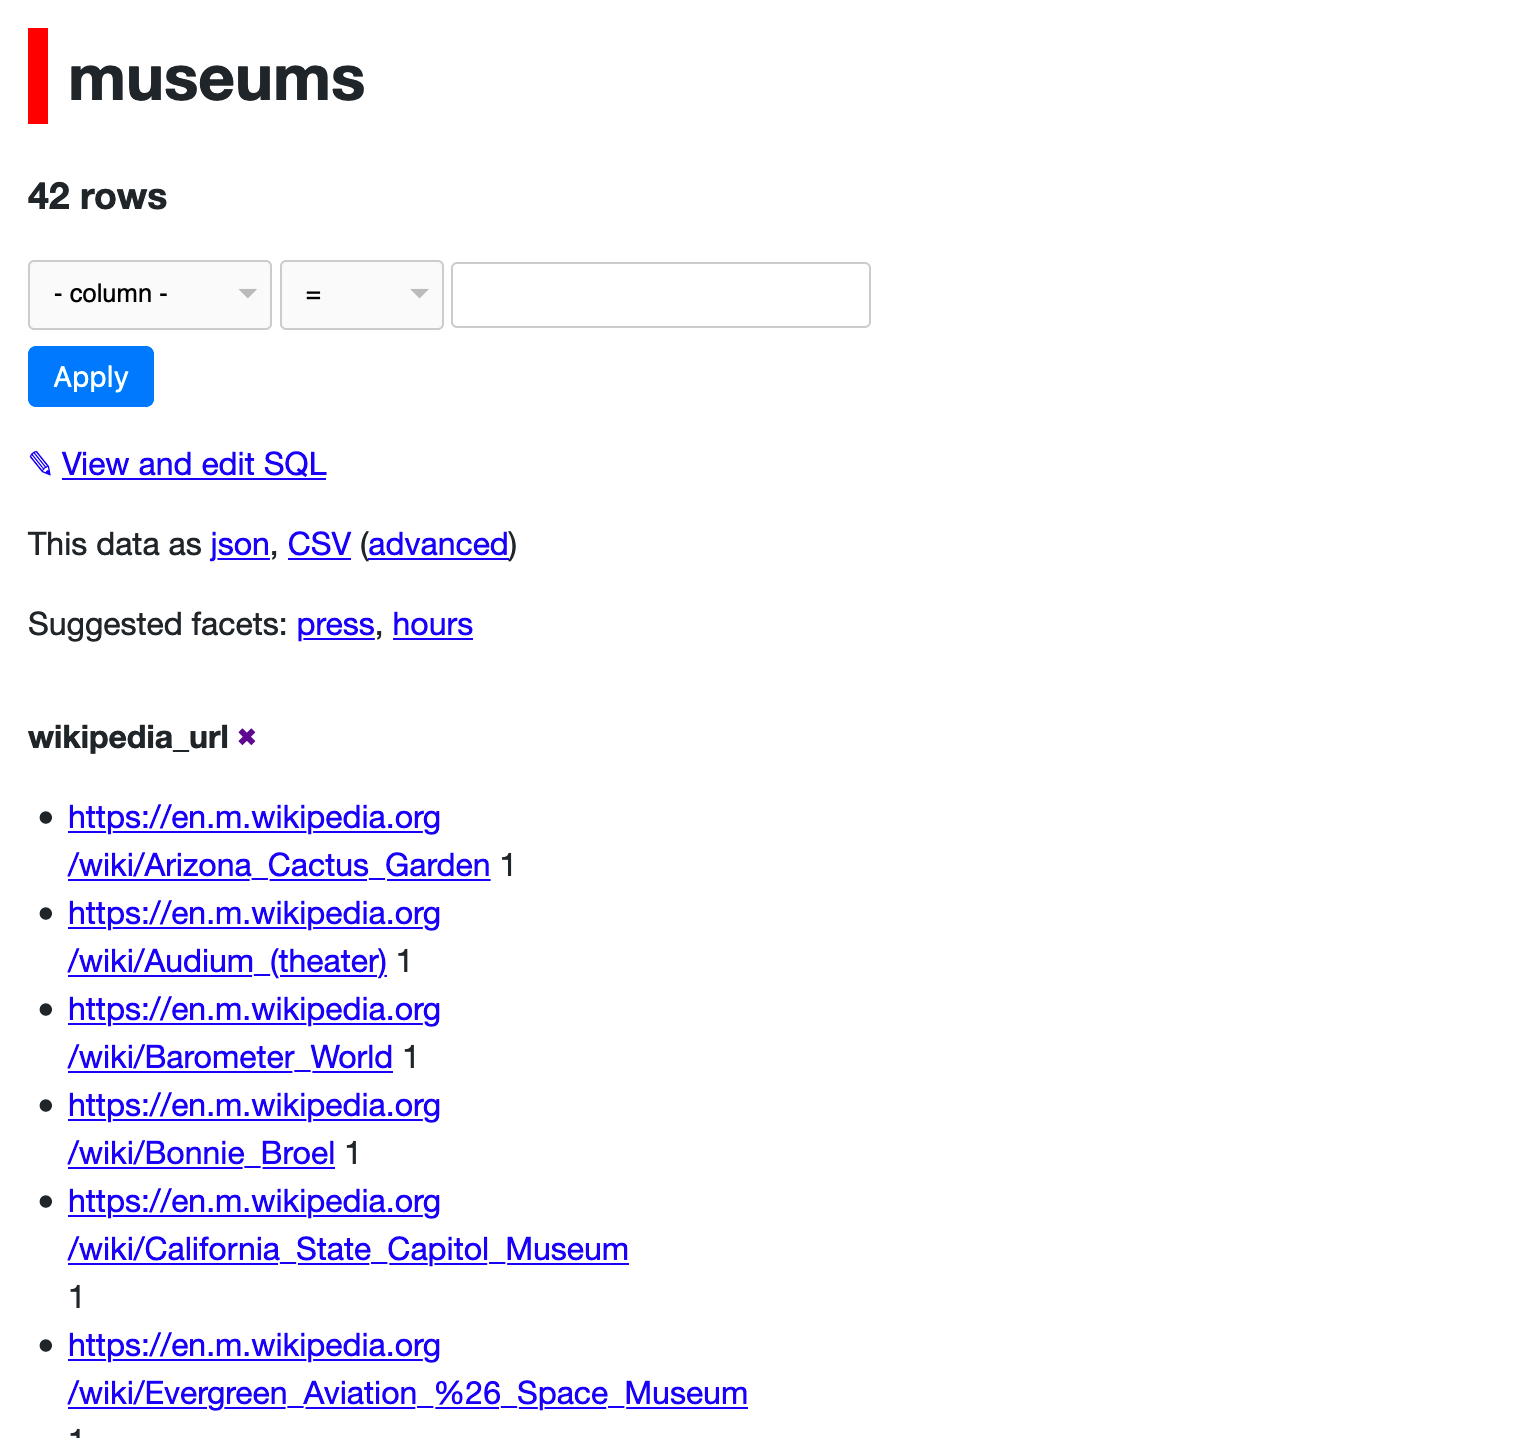 museums__museums__42_rows